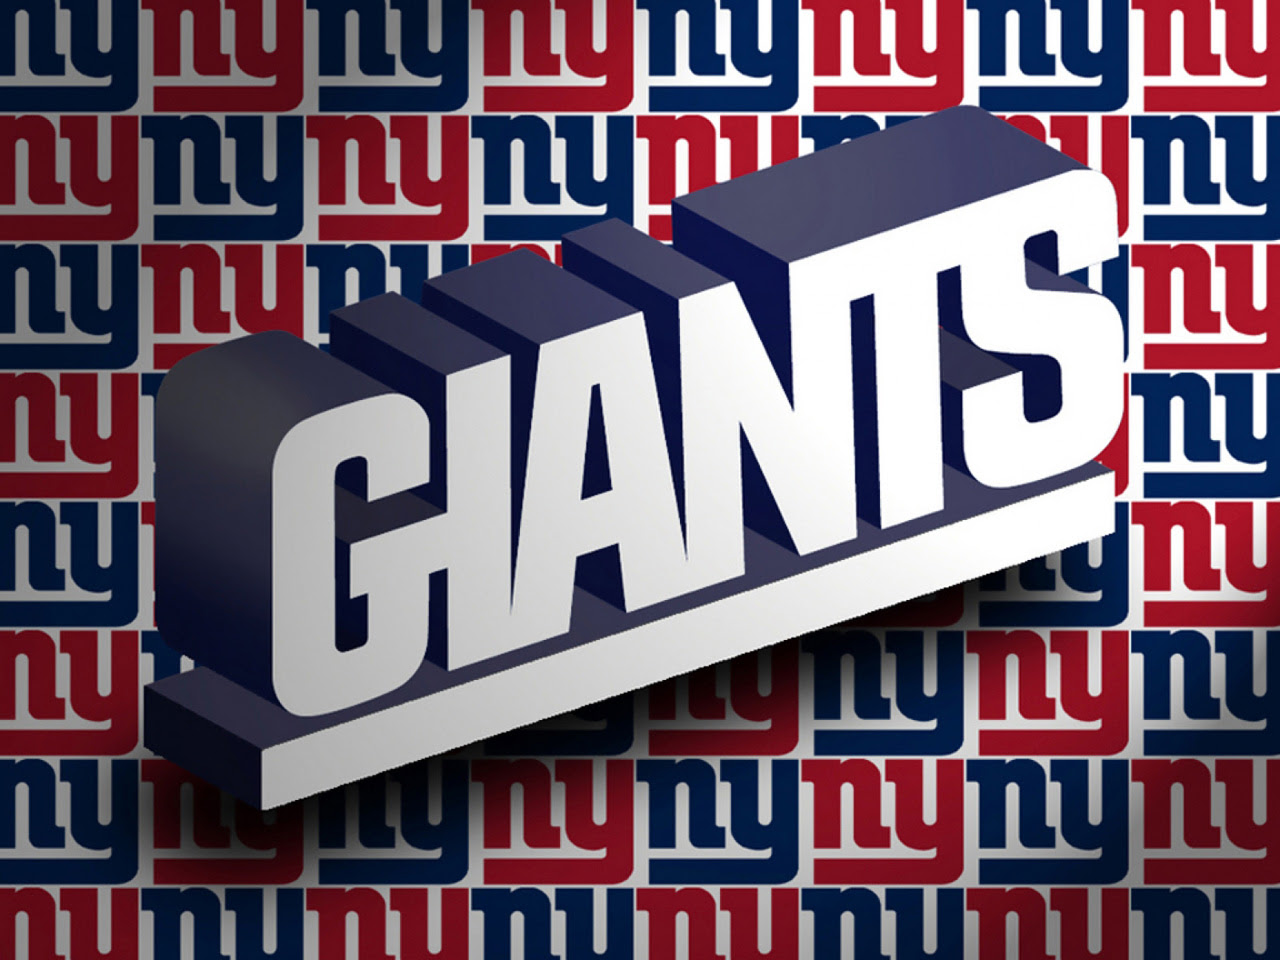 New York Giants Wallpaper 1280x960 73368